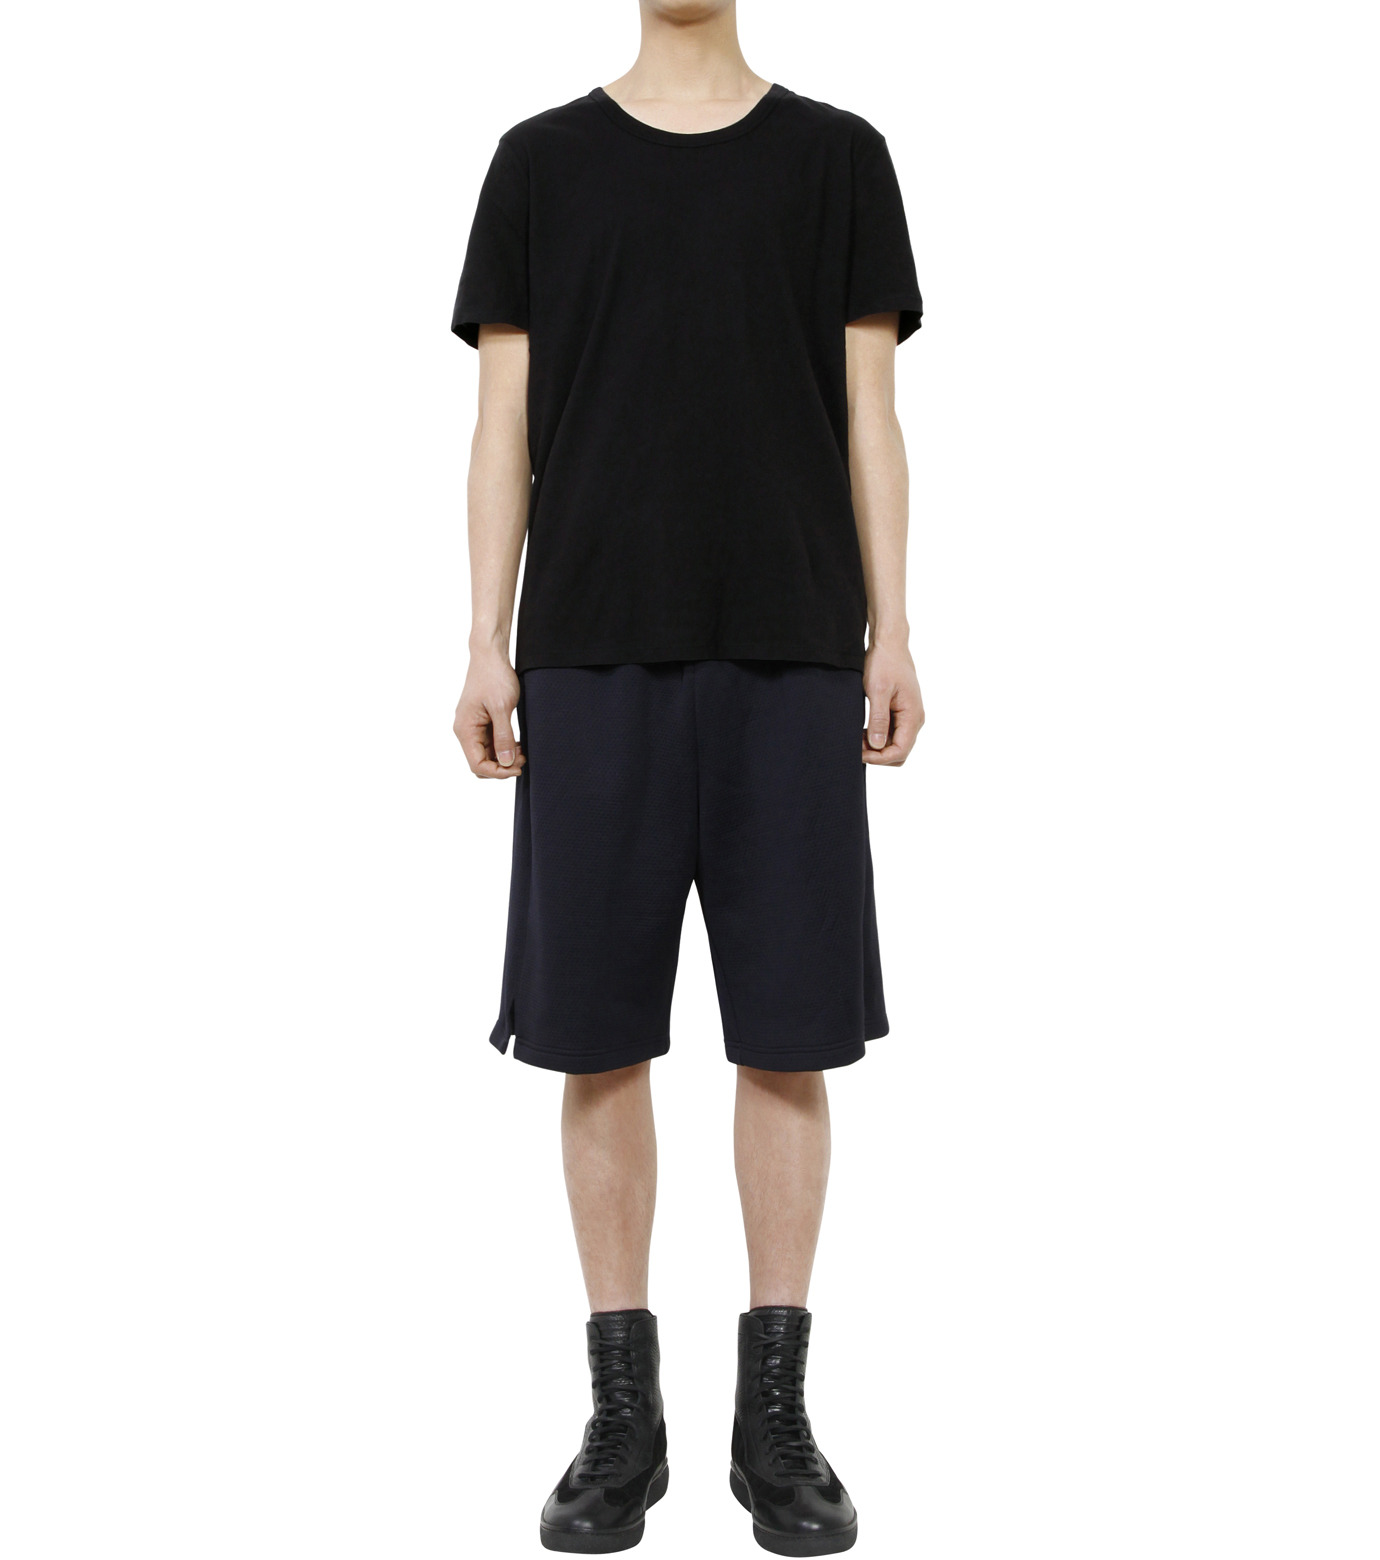 T by Alexander Wang(ティーバイ アレキサンダーワン)のBasic T-BLACK(カットソー/cut and sewn)-500201C-13 拡大詳細画像3